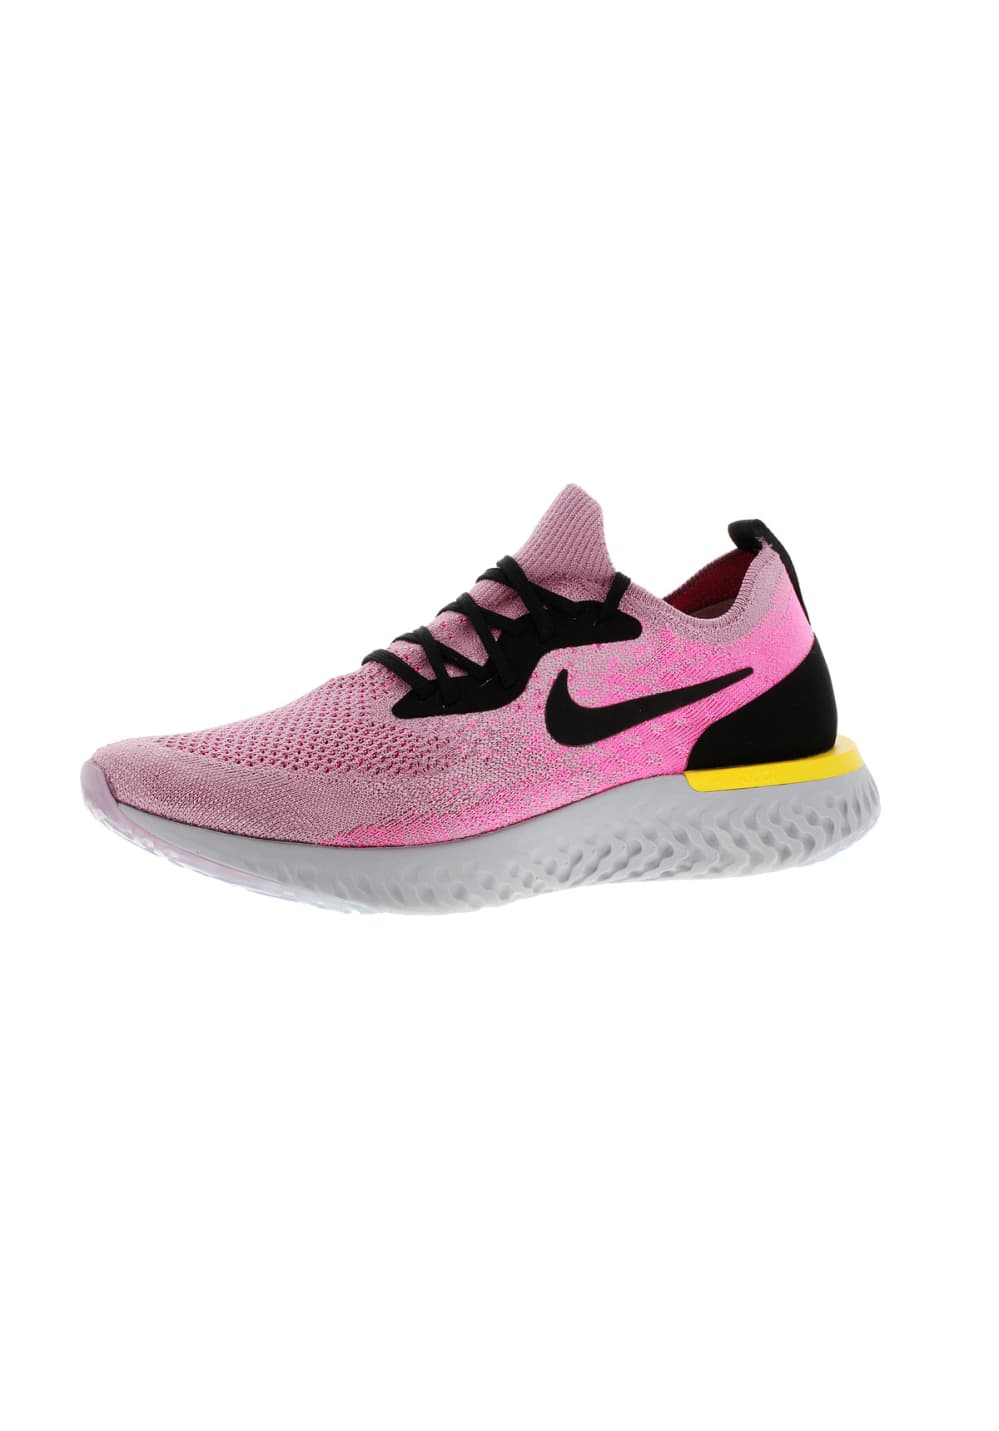 a102608c96e23 Next. Nike. Odyssey React - Running shoes for Women. €149.95. incl. VAT,  plus shipping costs